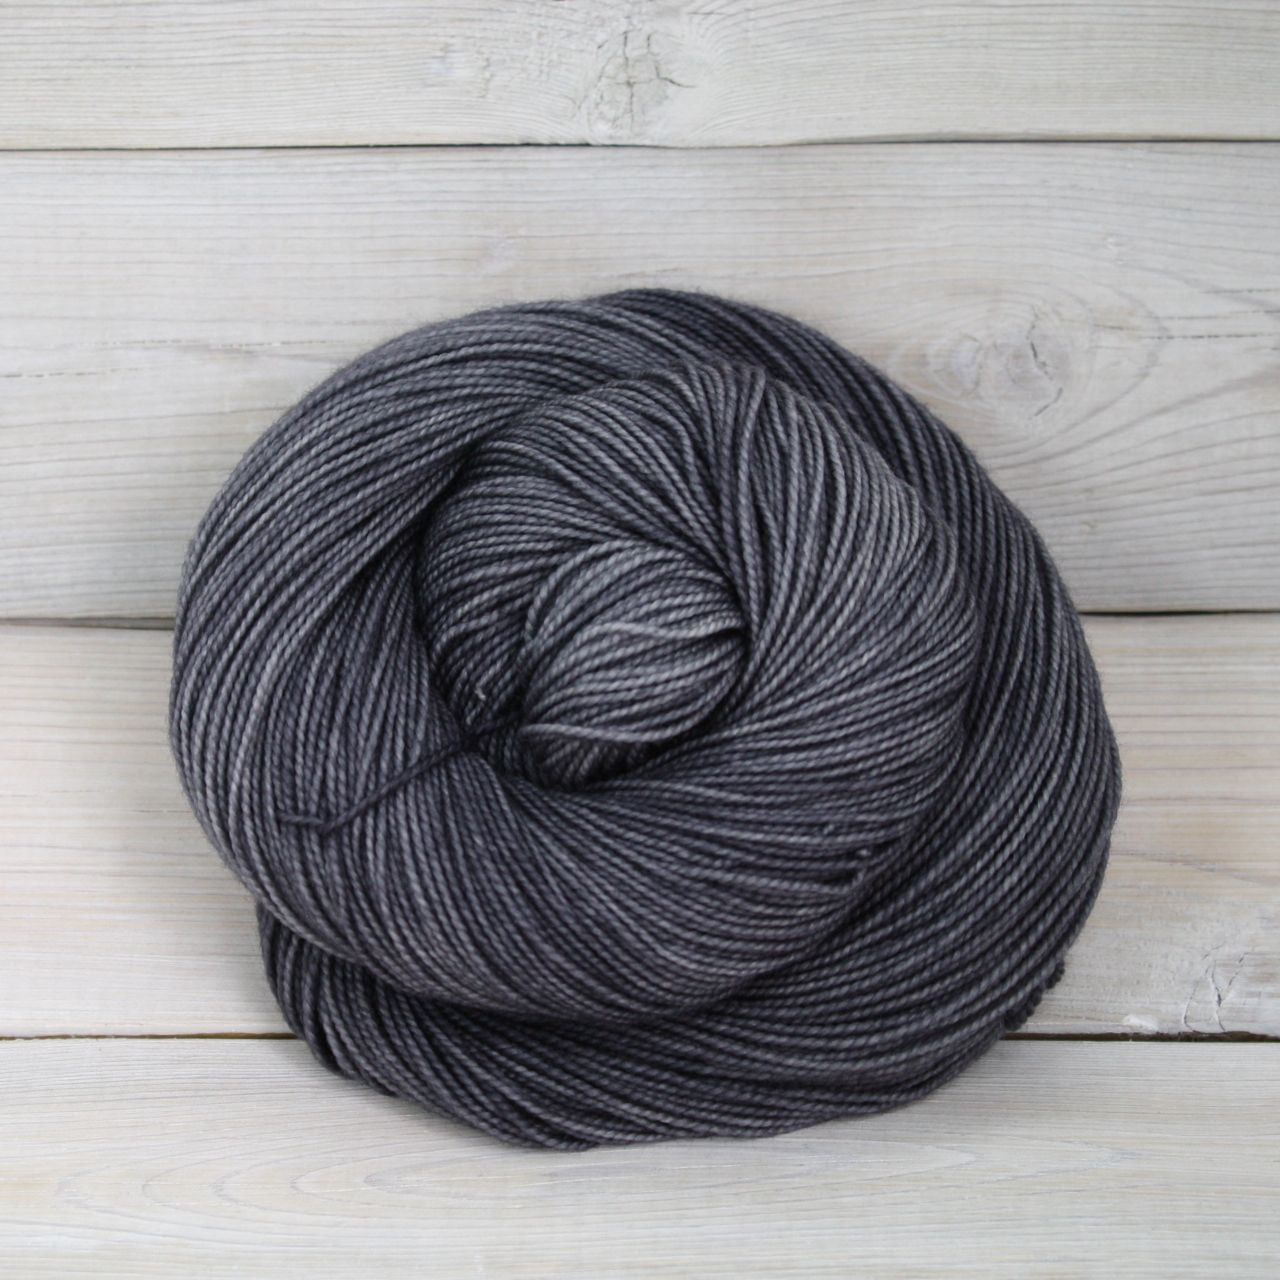 Celeste Yarn | Colorway: Charcoal